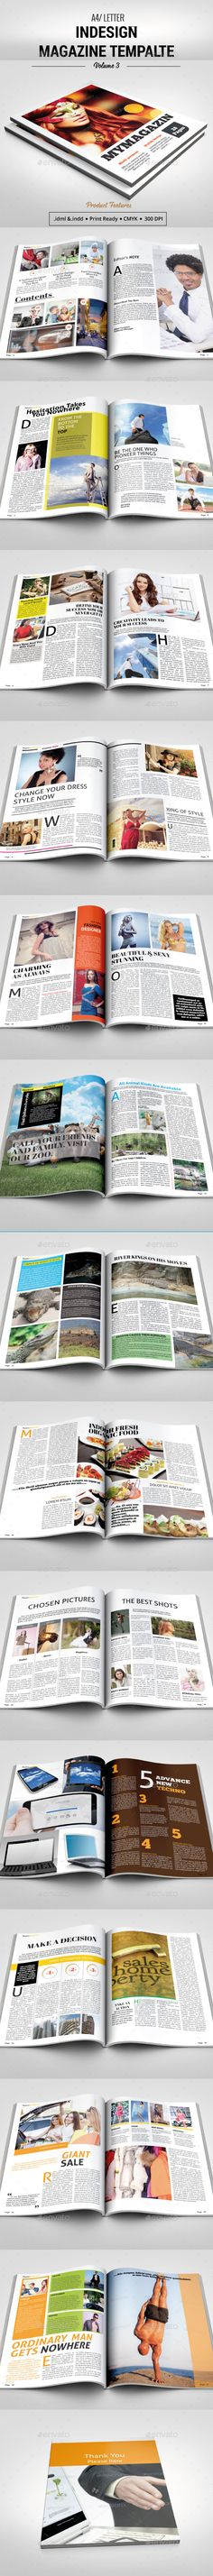 Indesign Magazine Template Original, modern and professional magazine design with a luxury & stylish look. It consists of 28 pages